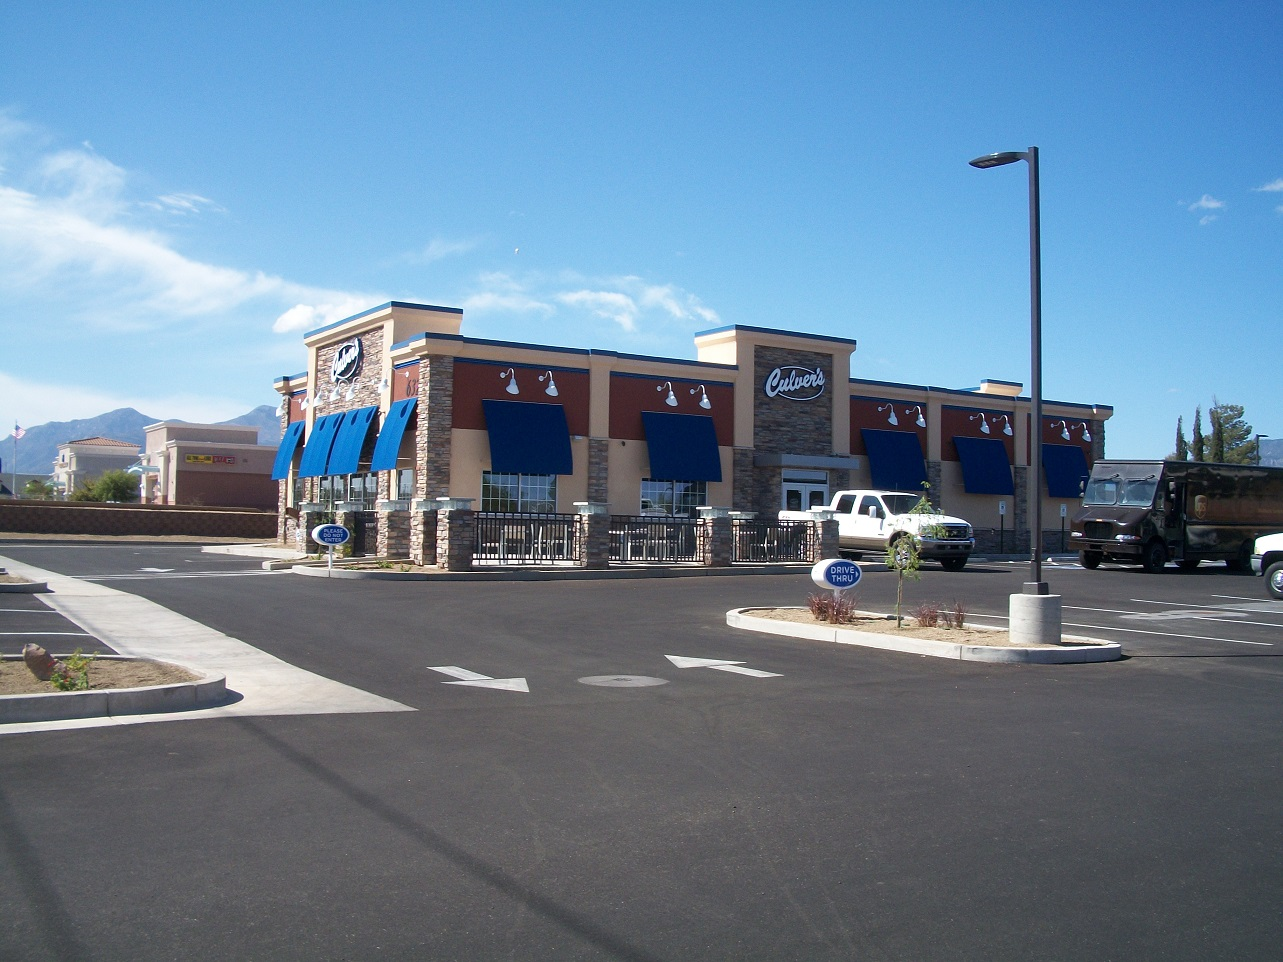 Culvers Developed Condition